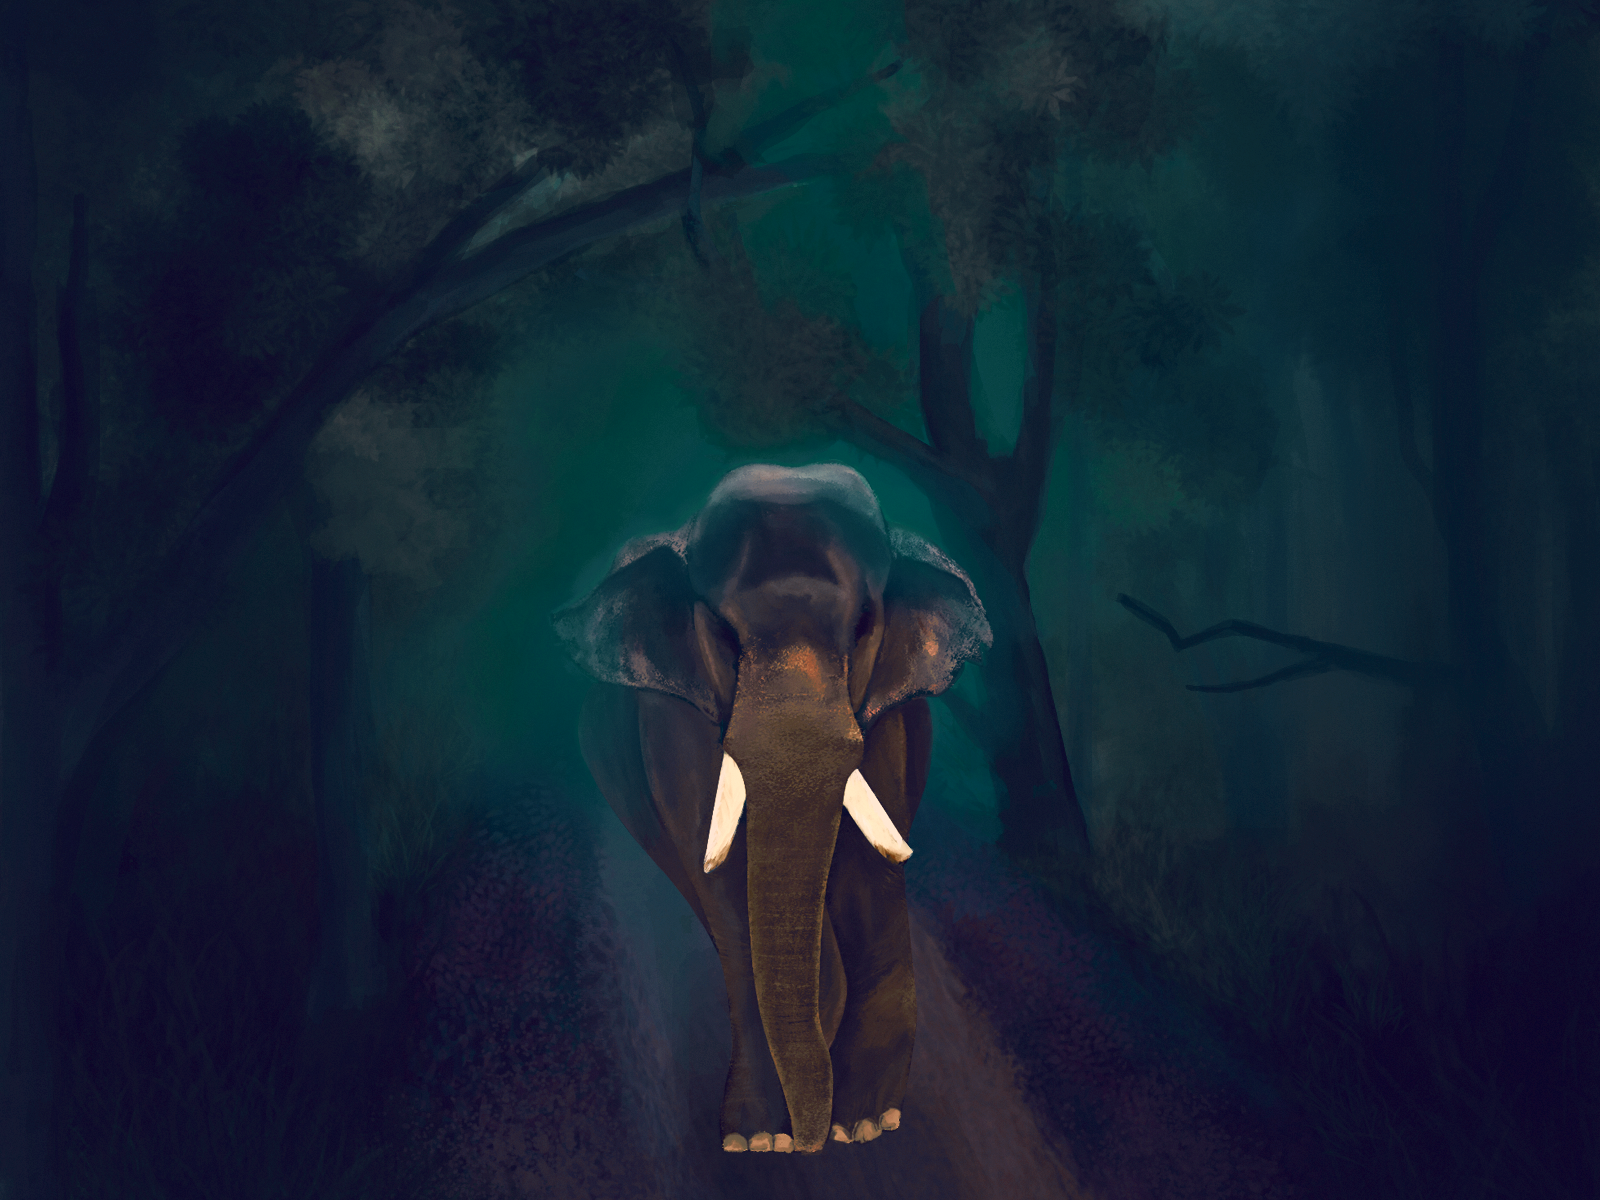 Kerala Elephants Wallpapers Wallpaper Cave Almost files can be used for commercial. kerala elephants wallpapers wallpaper